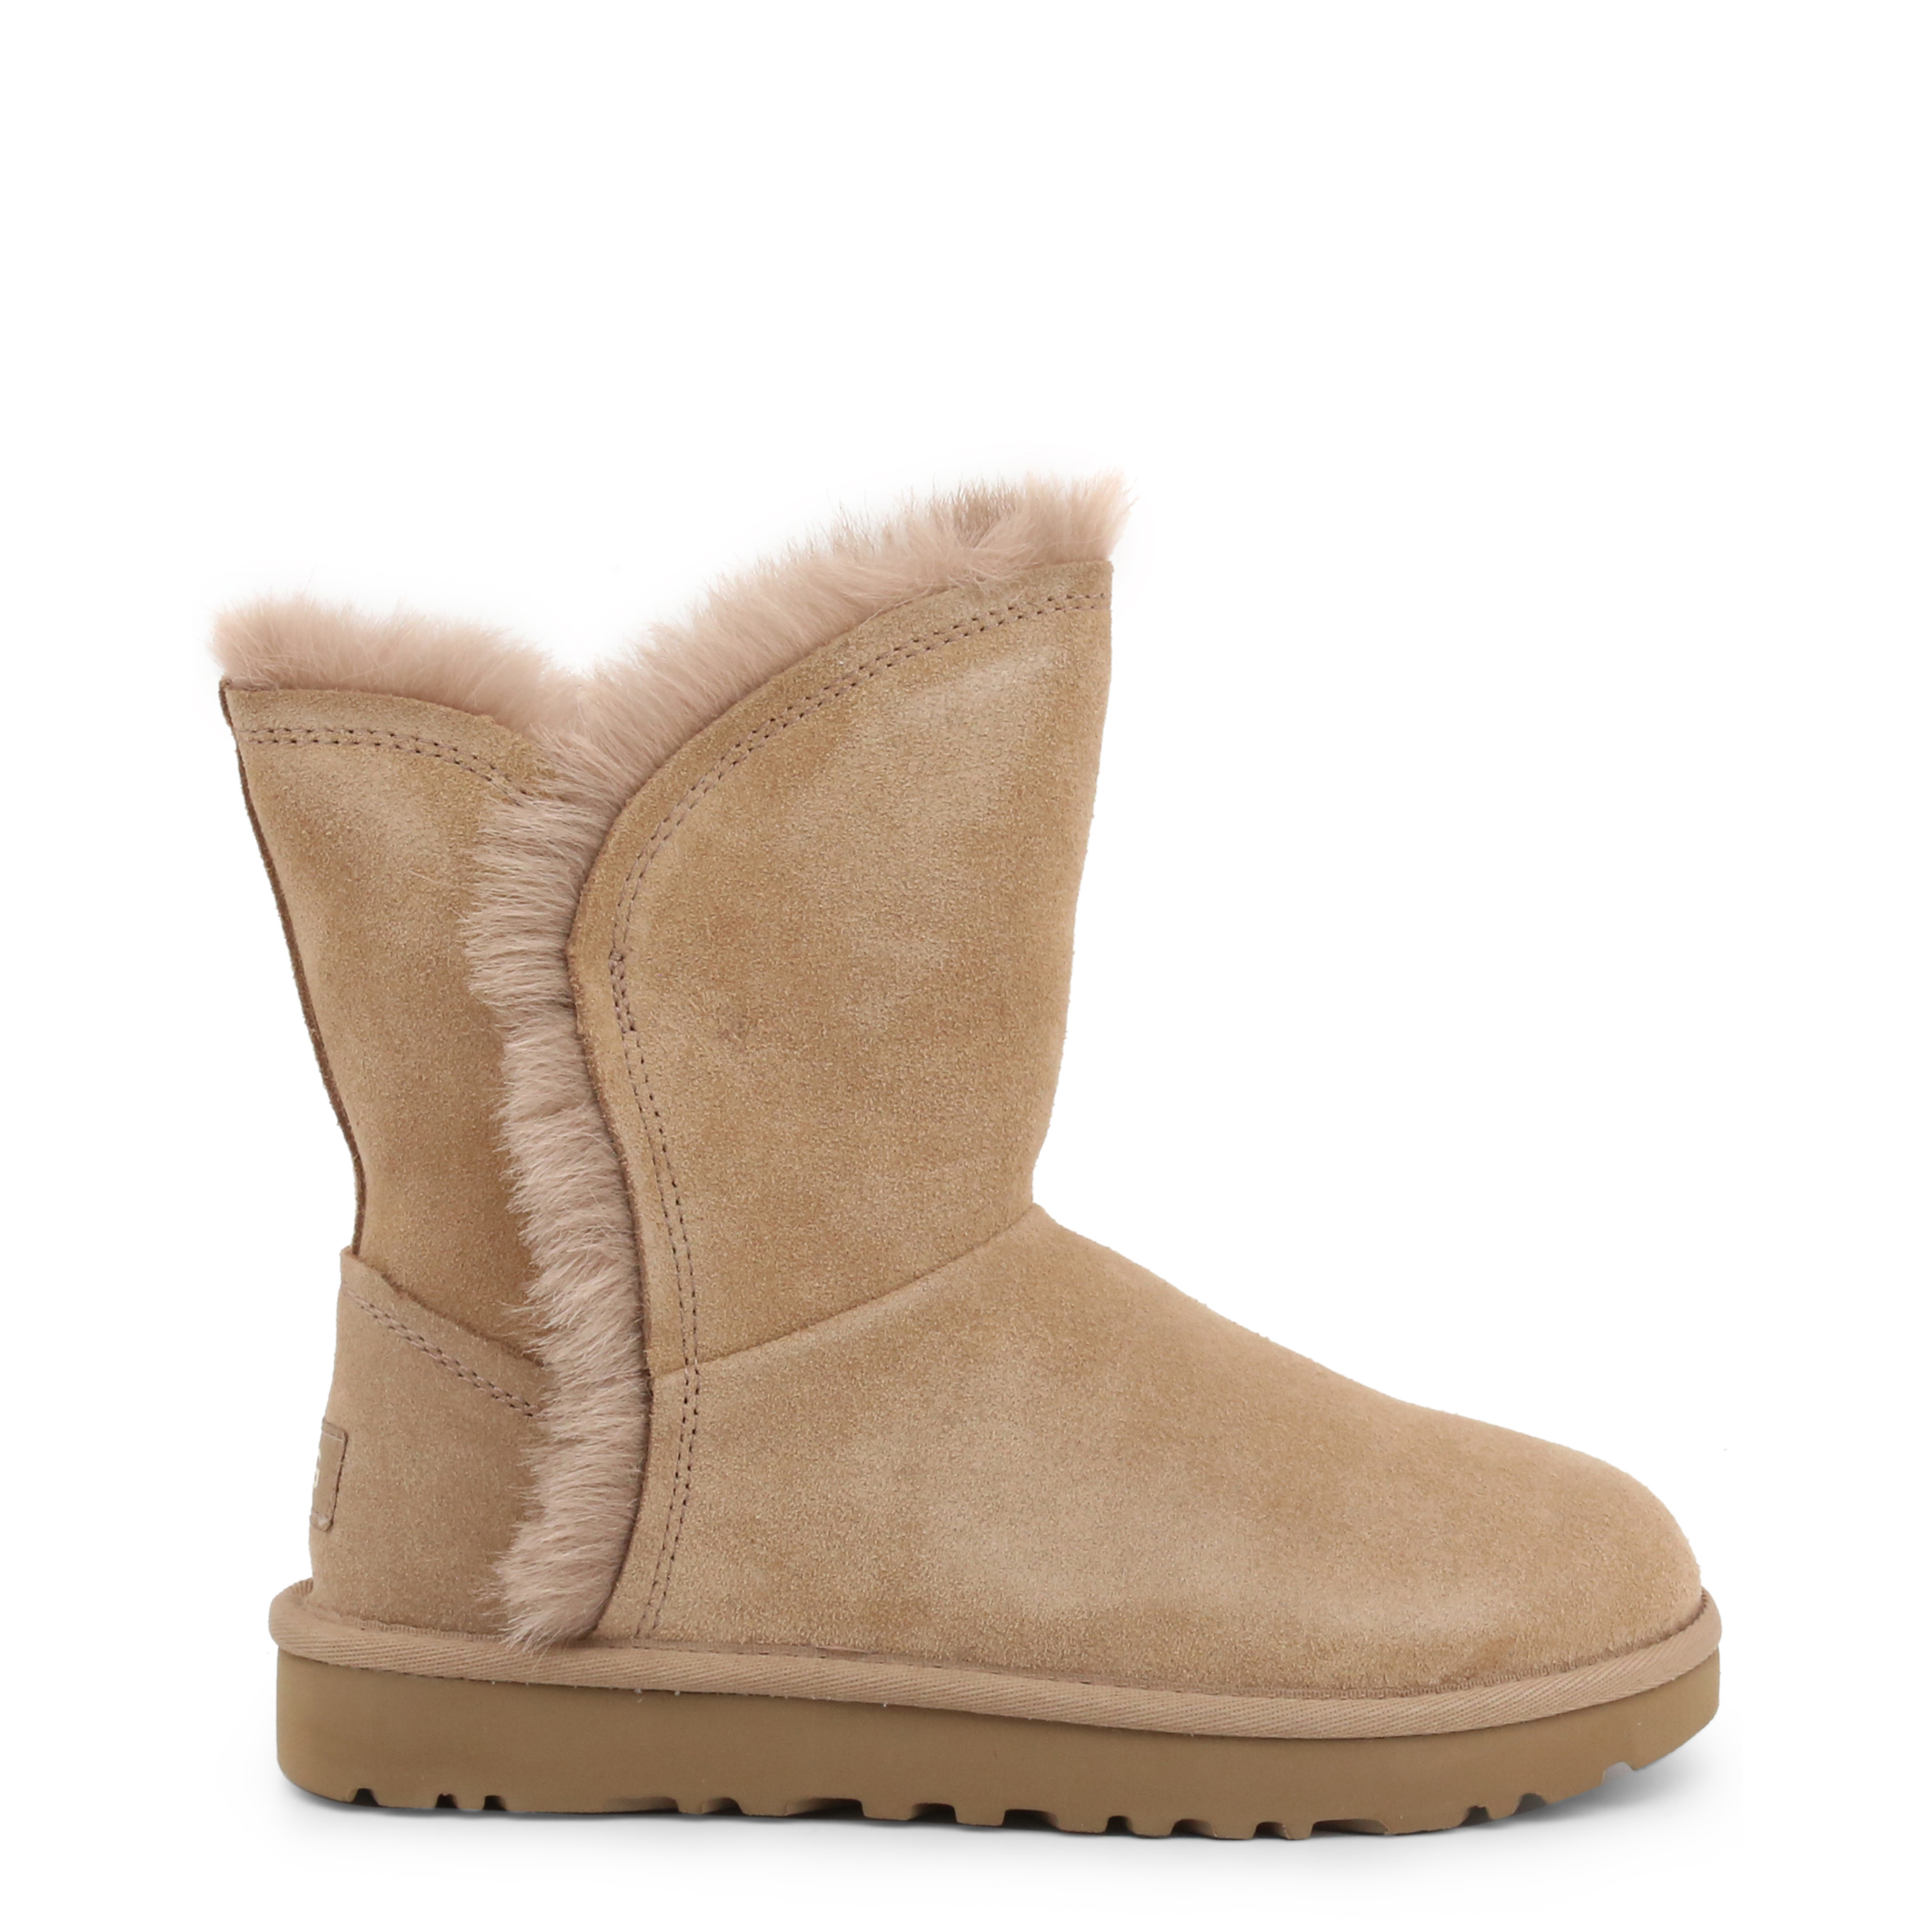 Bottines Fourrées UGG FLUFF_HIGH-LOW_1103746 AMPHORA Beige